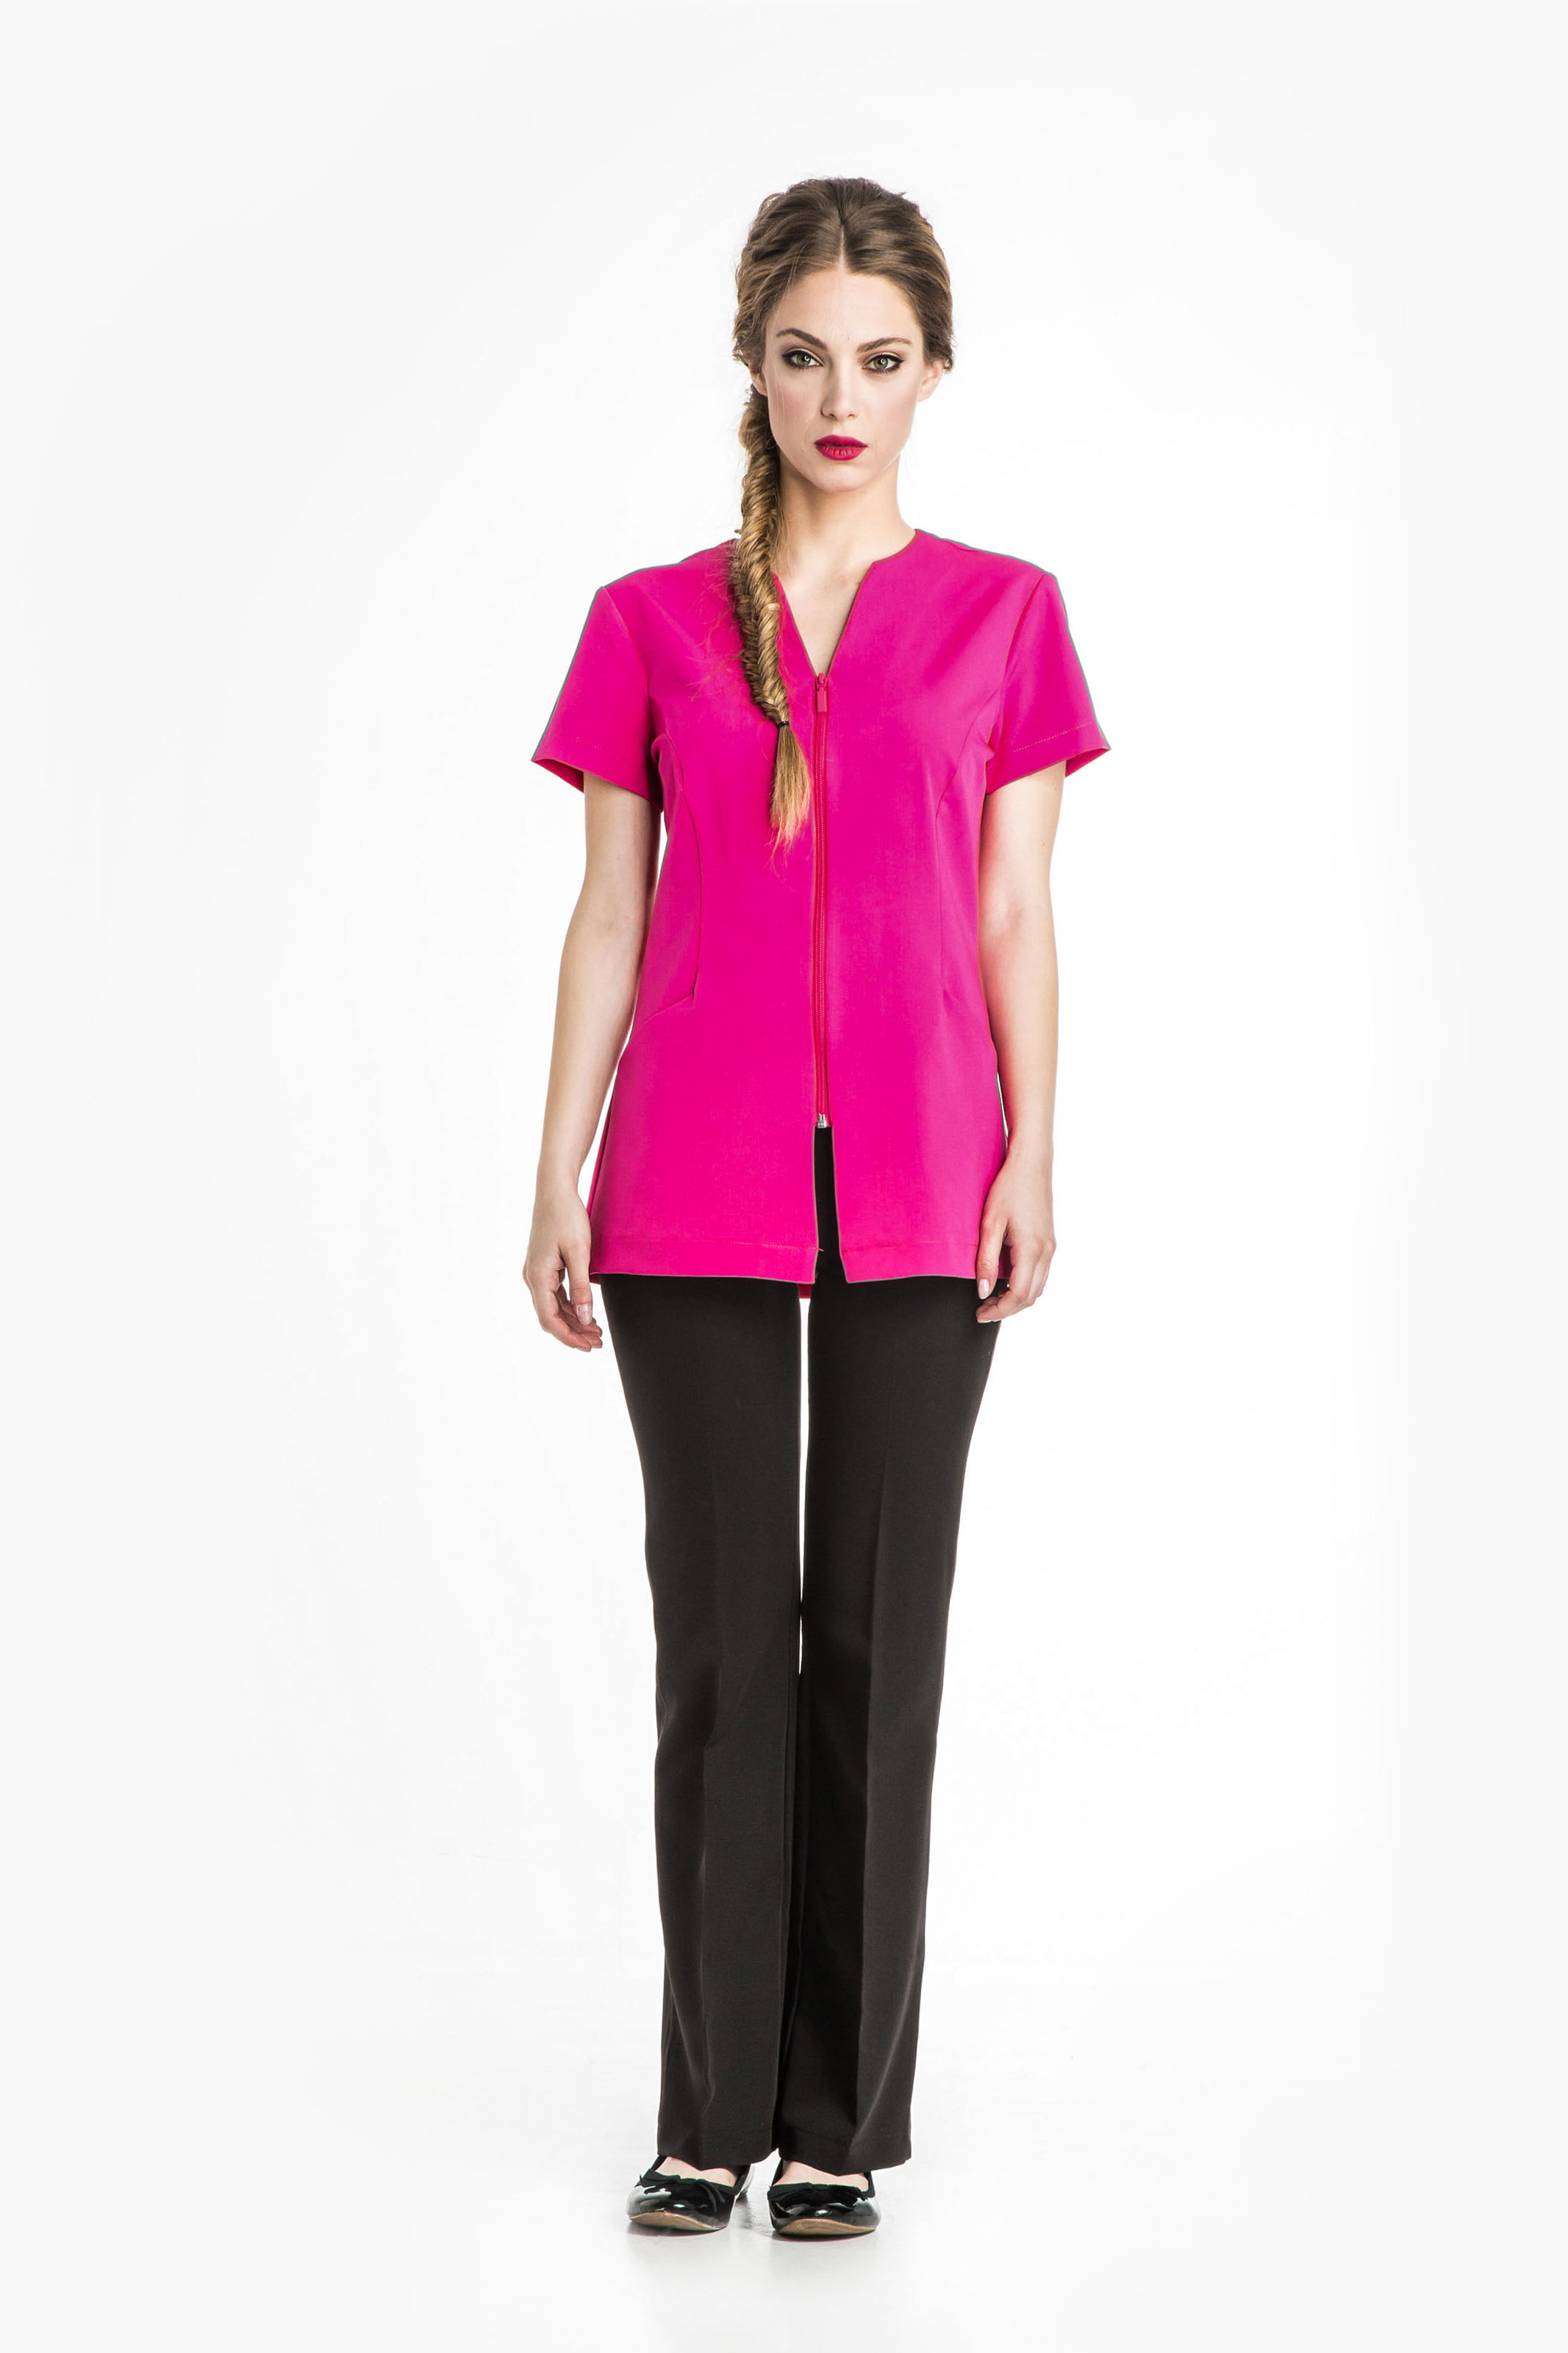 Aris Uniforms-FTU14-Selene Women's Collar-Less Zip Tunic